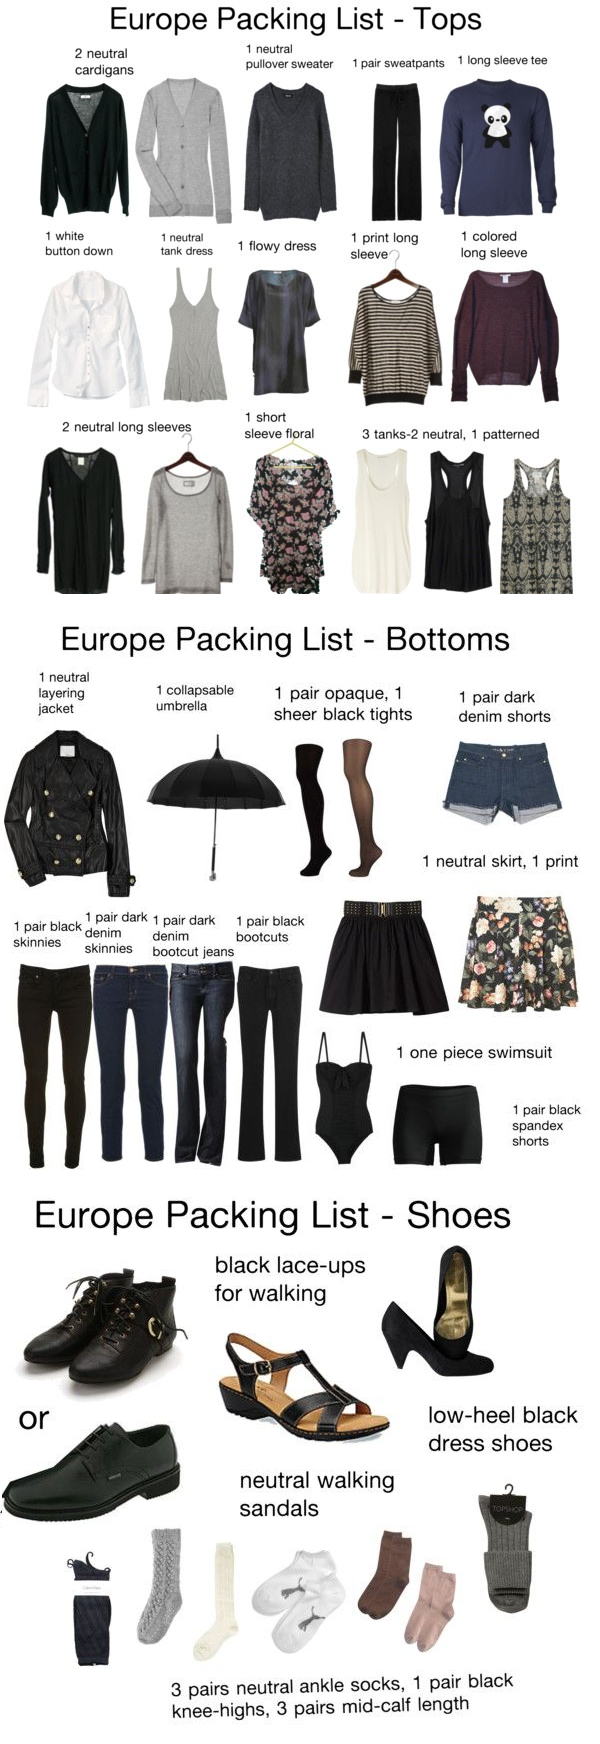 This seems like a lot if clothes for Europe. I'm sure we will end up doing laundry or if I have a say having the hotel do our laundry